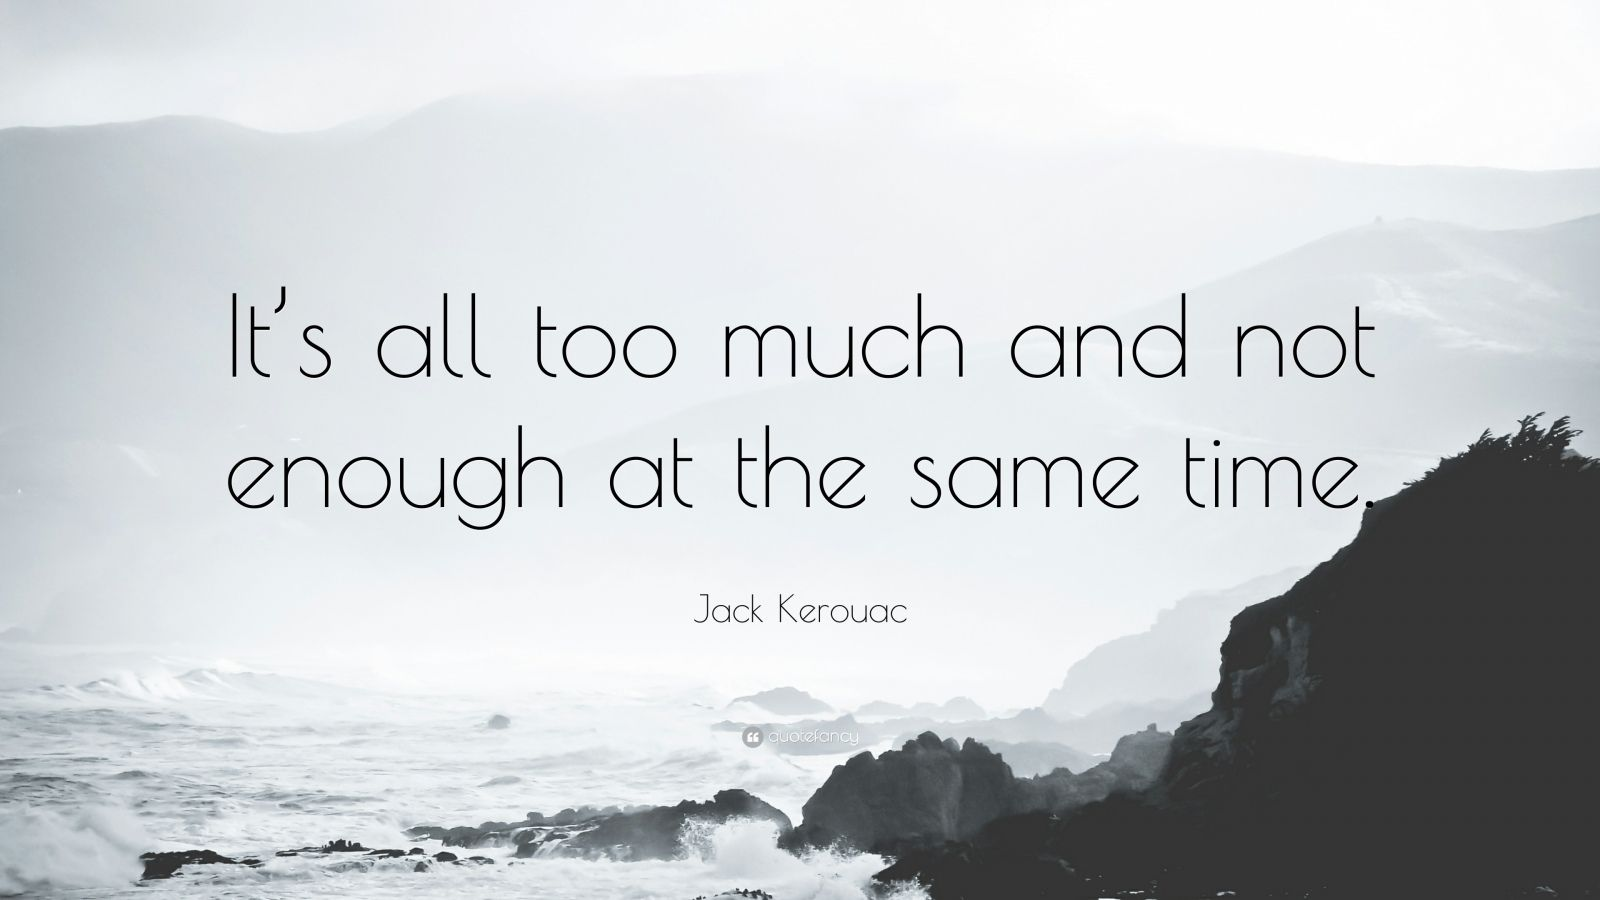 """Jack Kerouac Quote: """"It's all too much and not enough at the same time."""""""